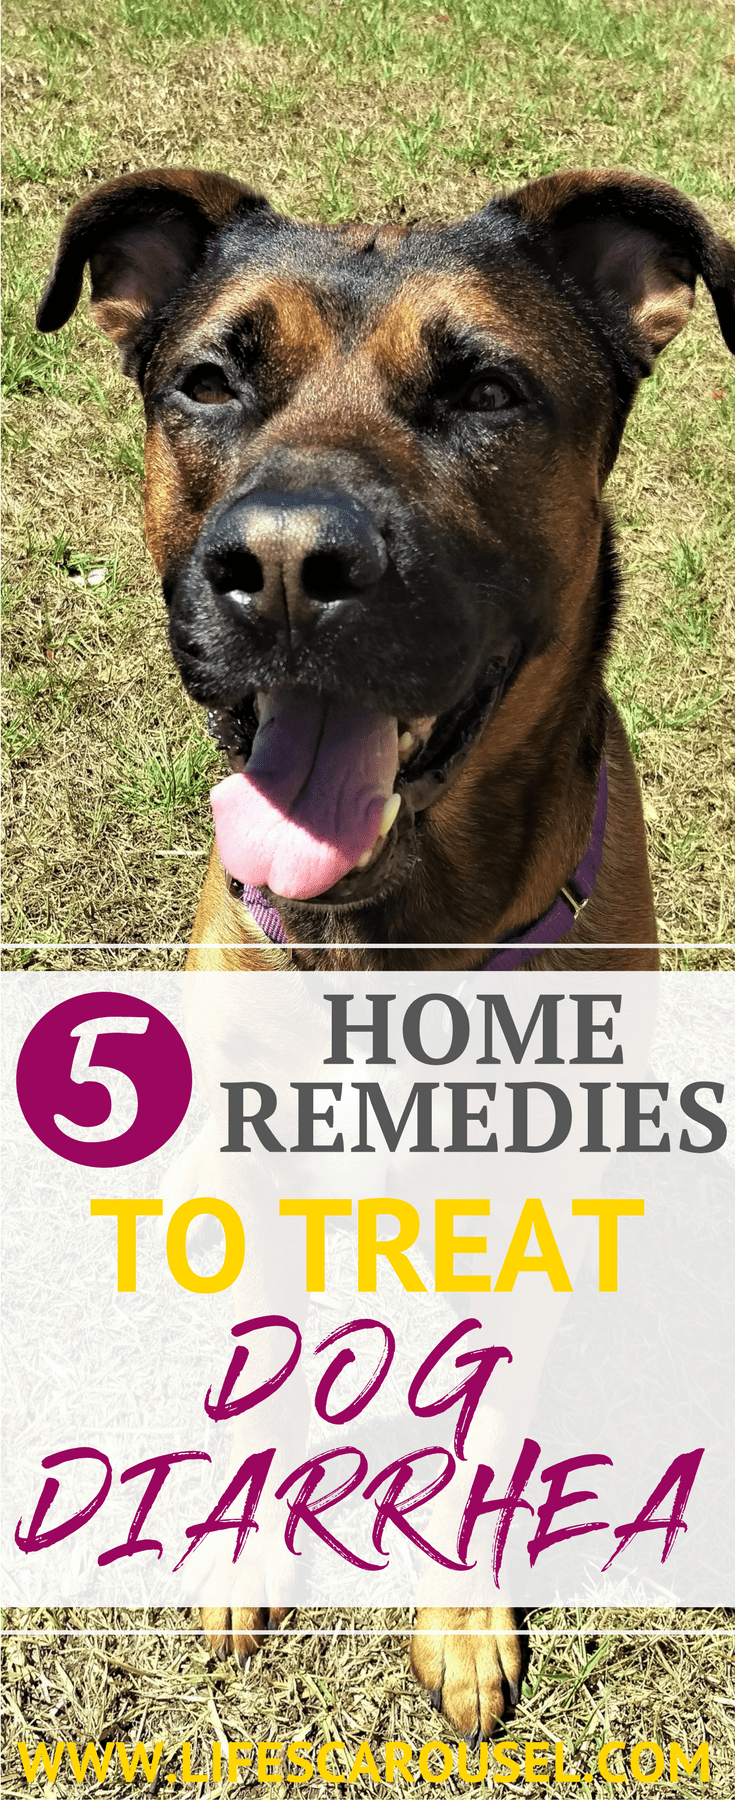 Dog Diarrhea Home Remedies 5 Best Fast Acting Remedies Diarrhea Remedies Dog Diarrhea Remedy Home Remedies